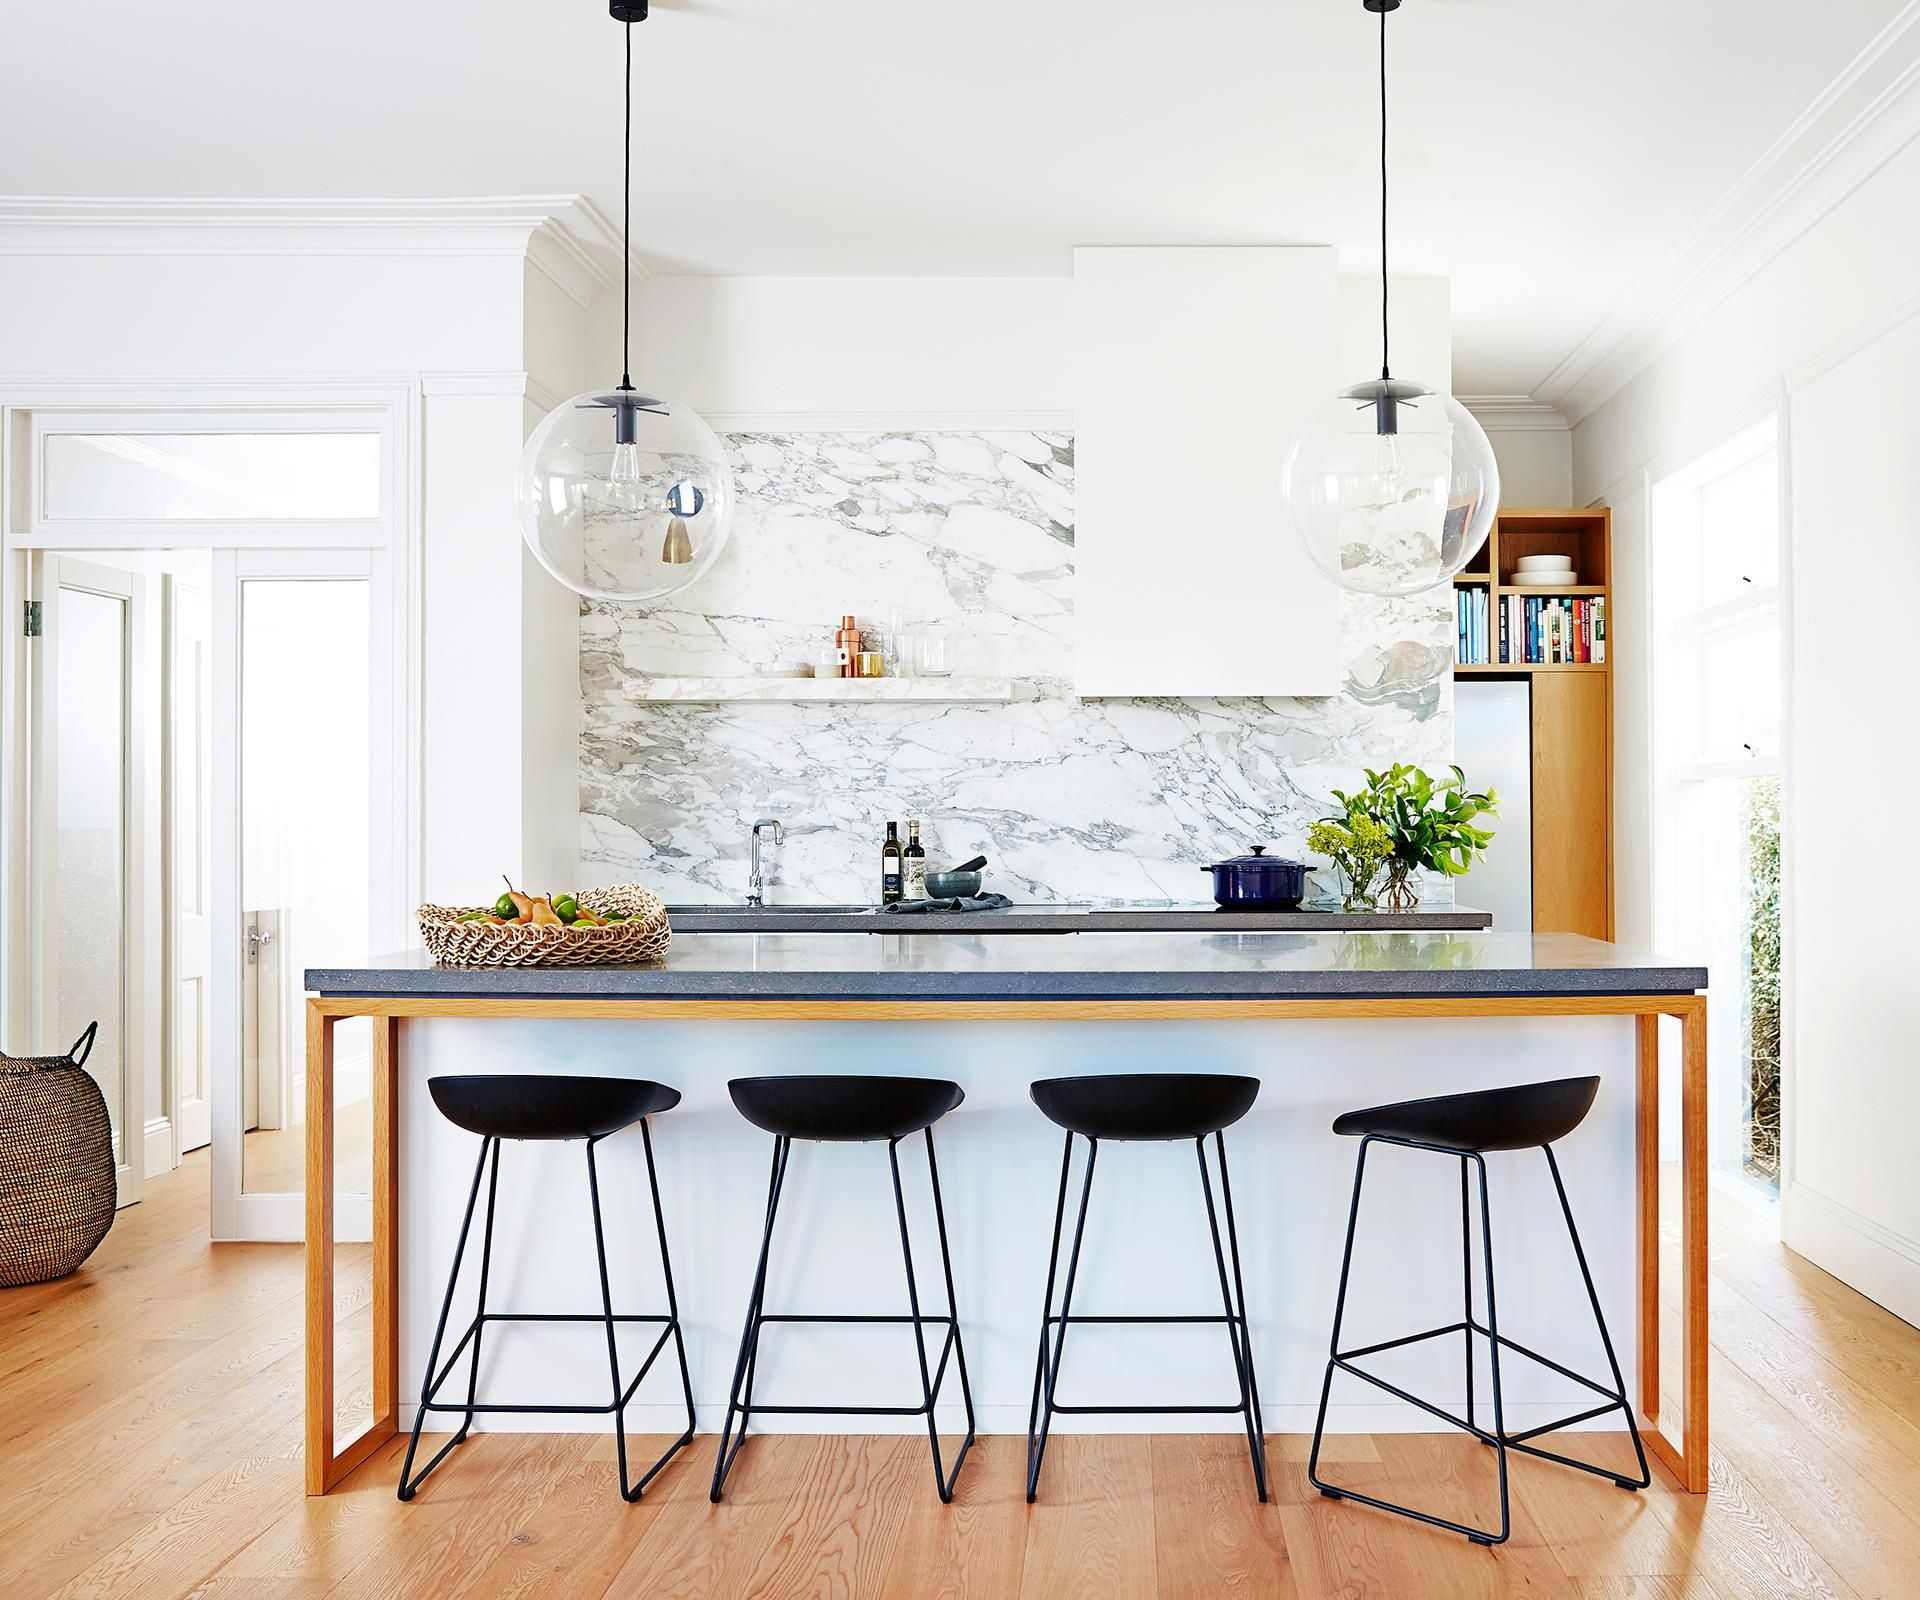 Kitchen Profile: Time To Shine In 2019